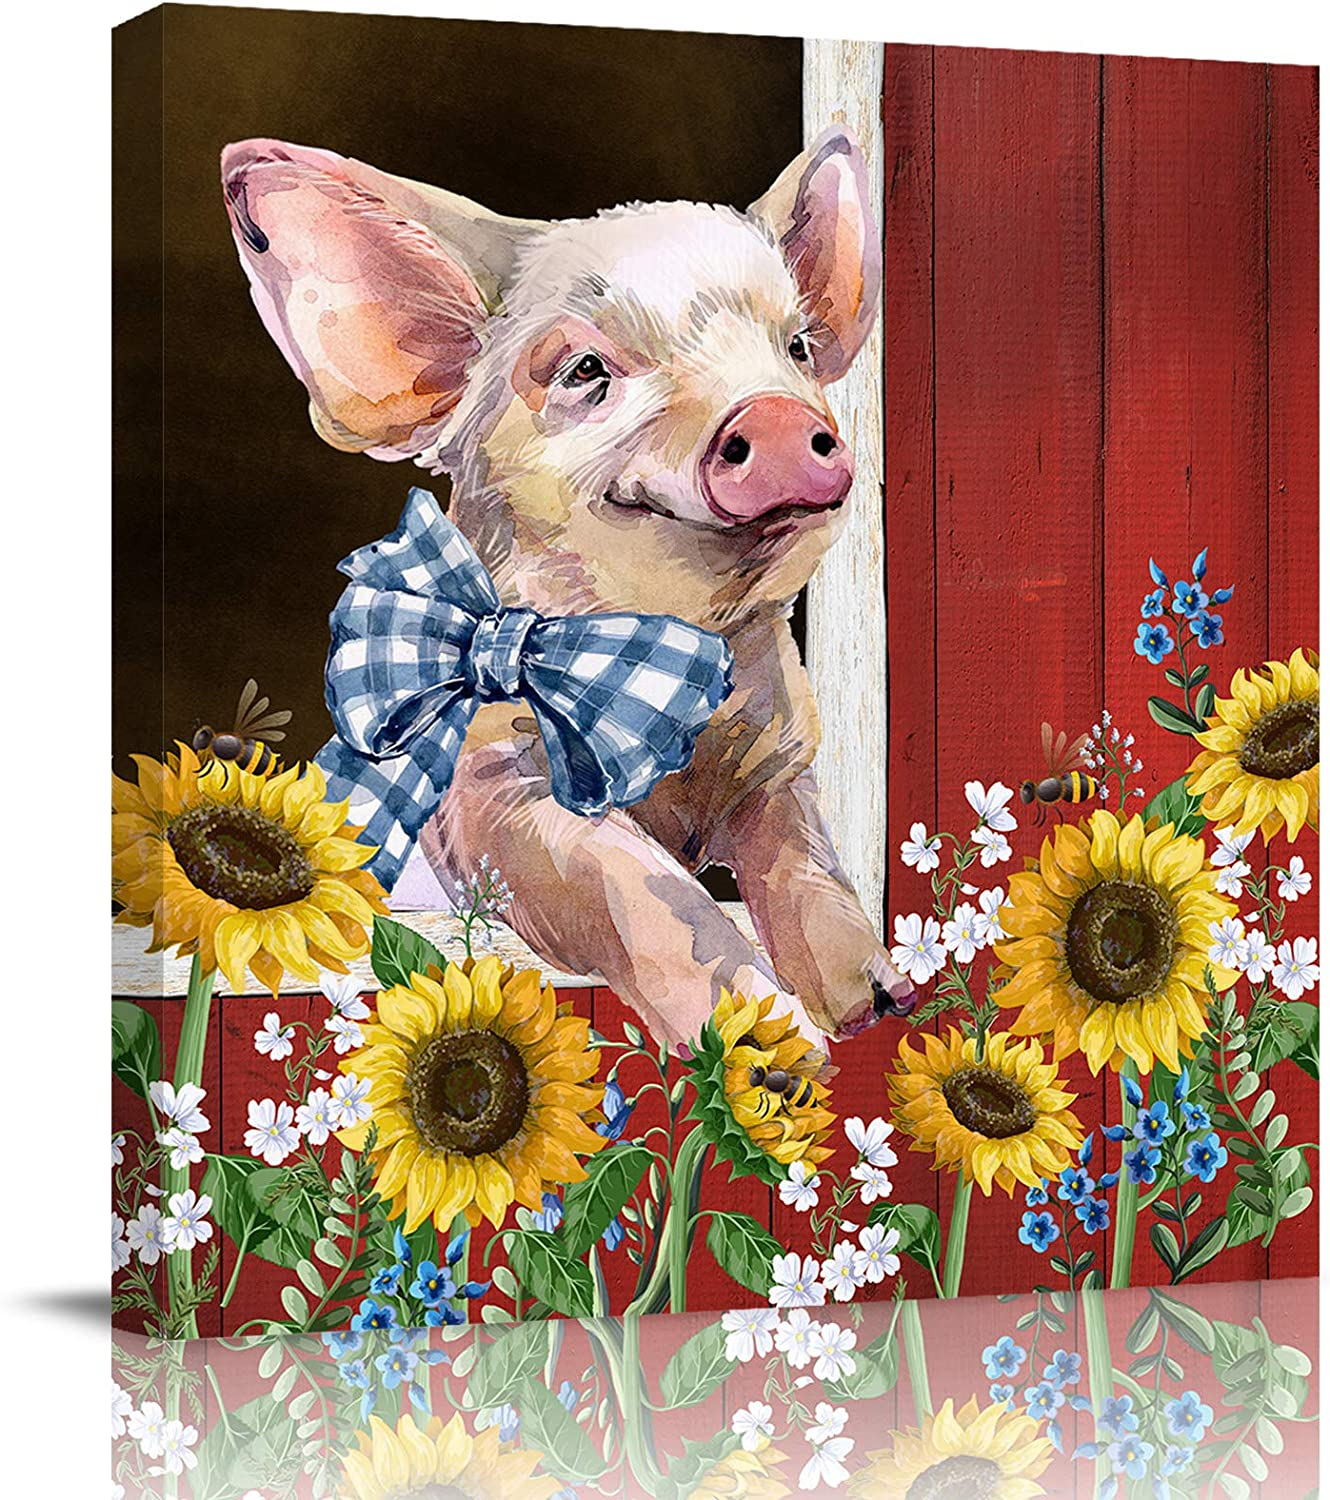 ERXPOOD Funny Pig with Bow Tie Canvas Wall Art Prints Farmhouse Animal with Sunflower Artwork Oil Painting Picture Ready to Hang for Bedroom Bathroom Kitchen Farm Wood Barn 12x12in